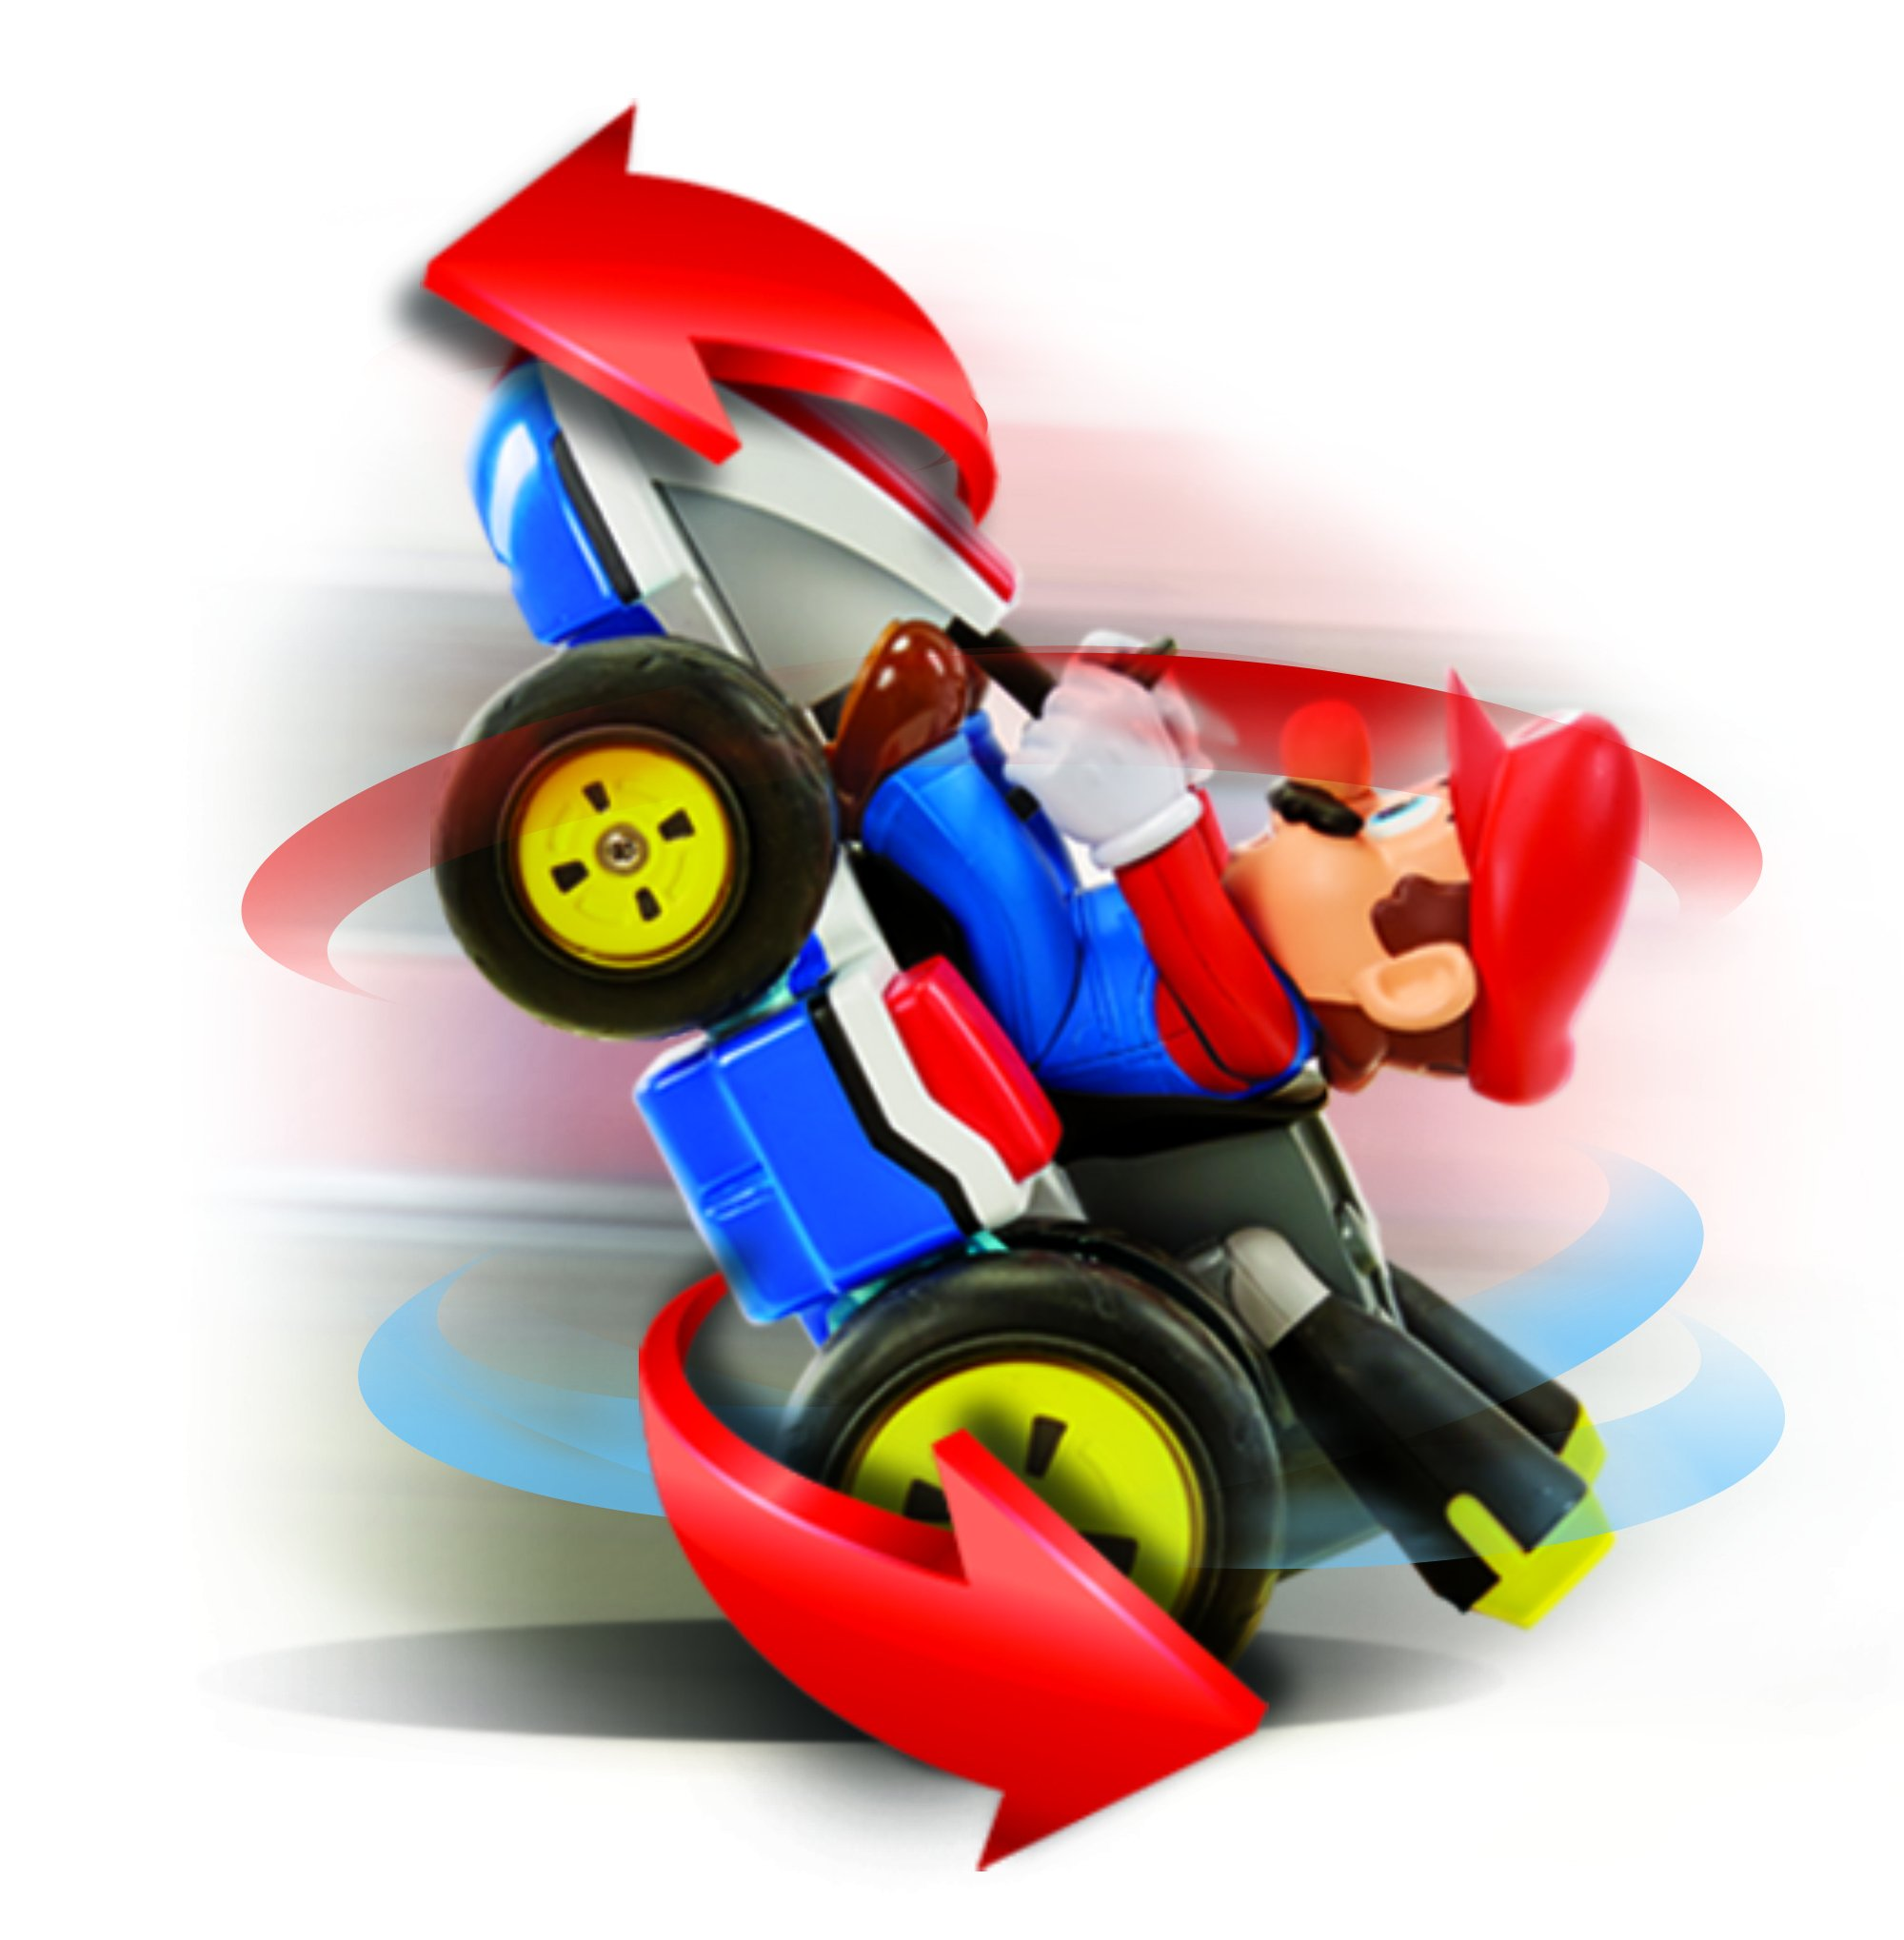 NINTENDO Super Mario Kart 8 Mario Anti-Gravity Mini RC Racer 2.4Ghz by Nintendo (Image #4)